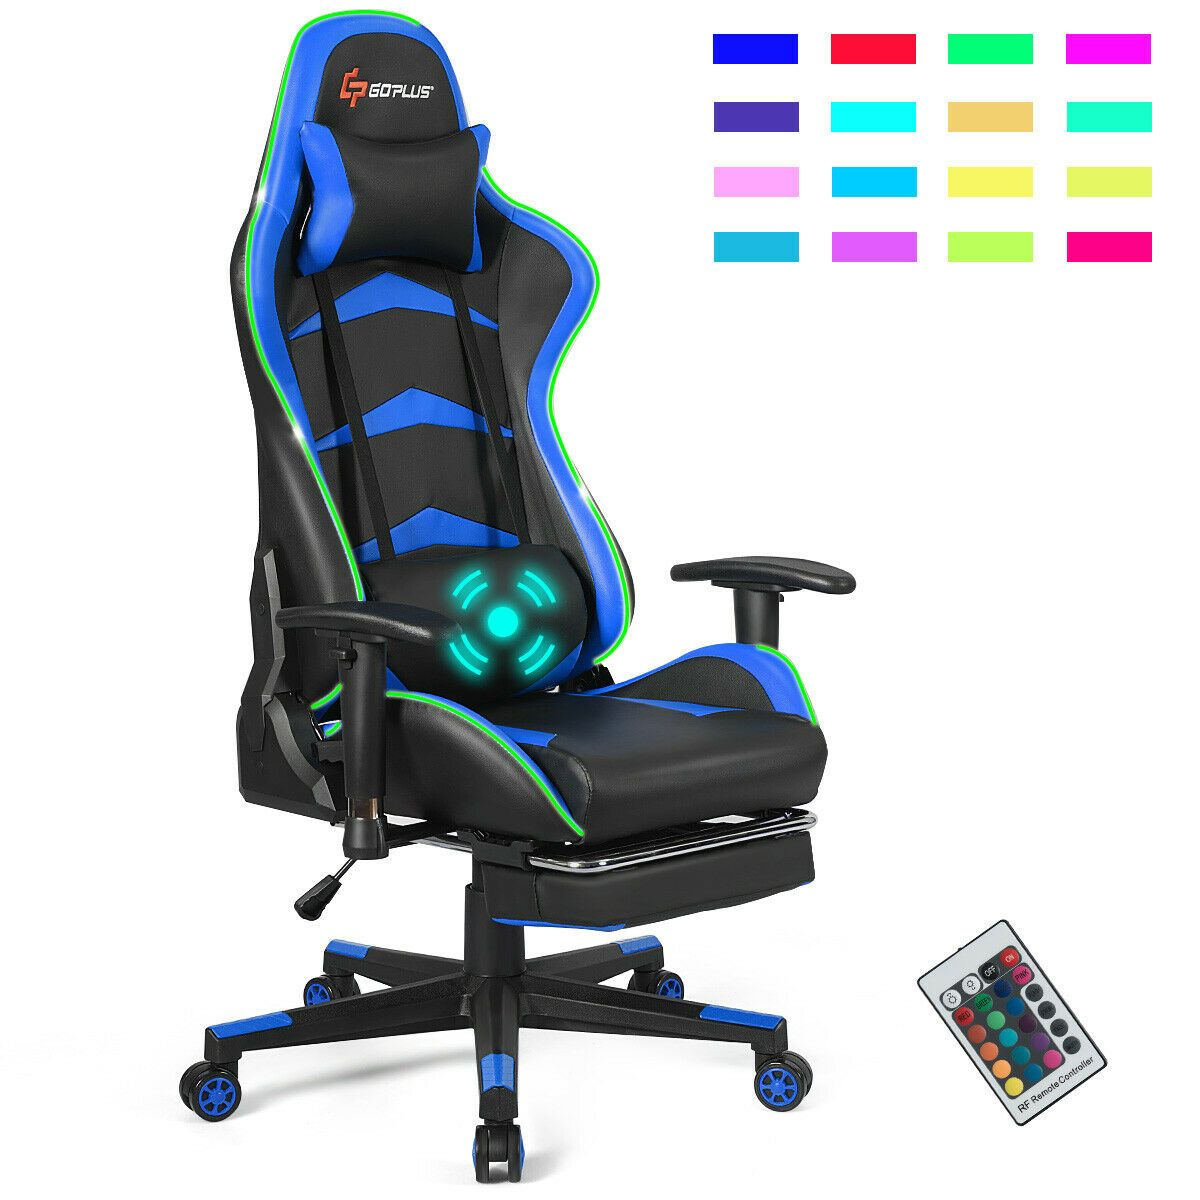 Massage Led Gaming Chair With Lumbar Support Footrest In 2020 Gaming Chair Gamer Chair Foot Rest